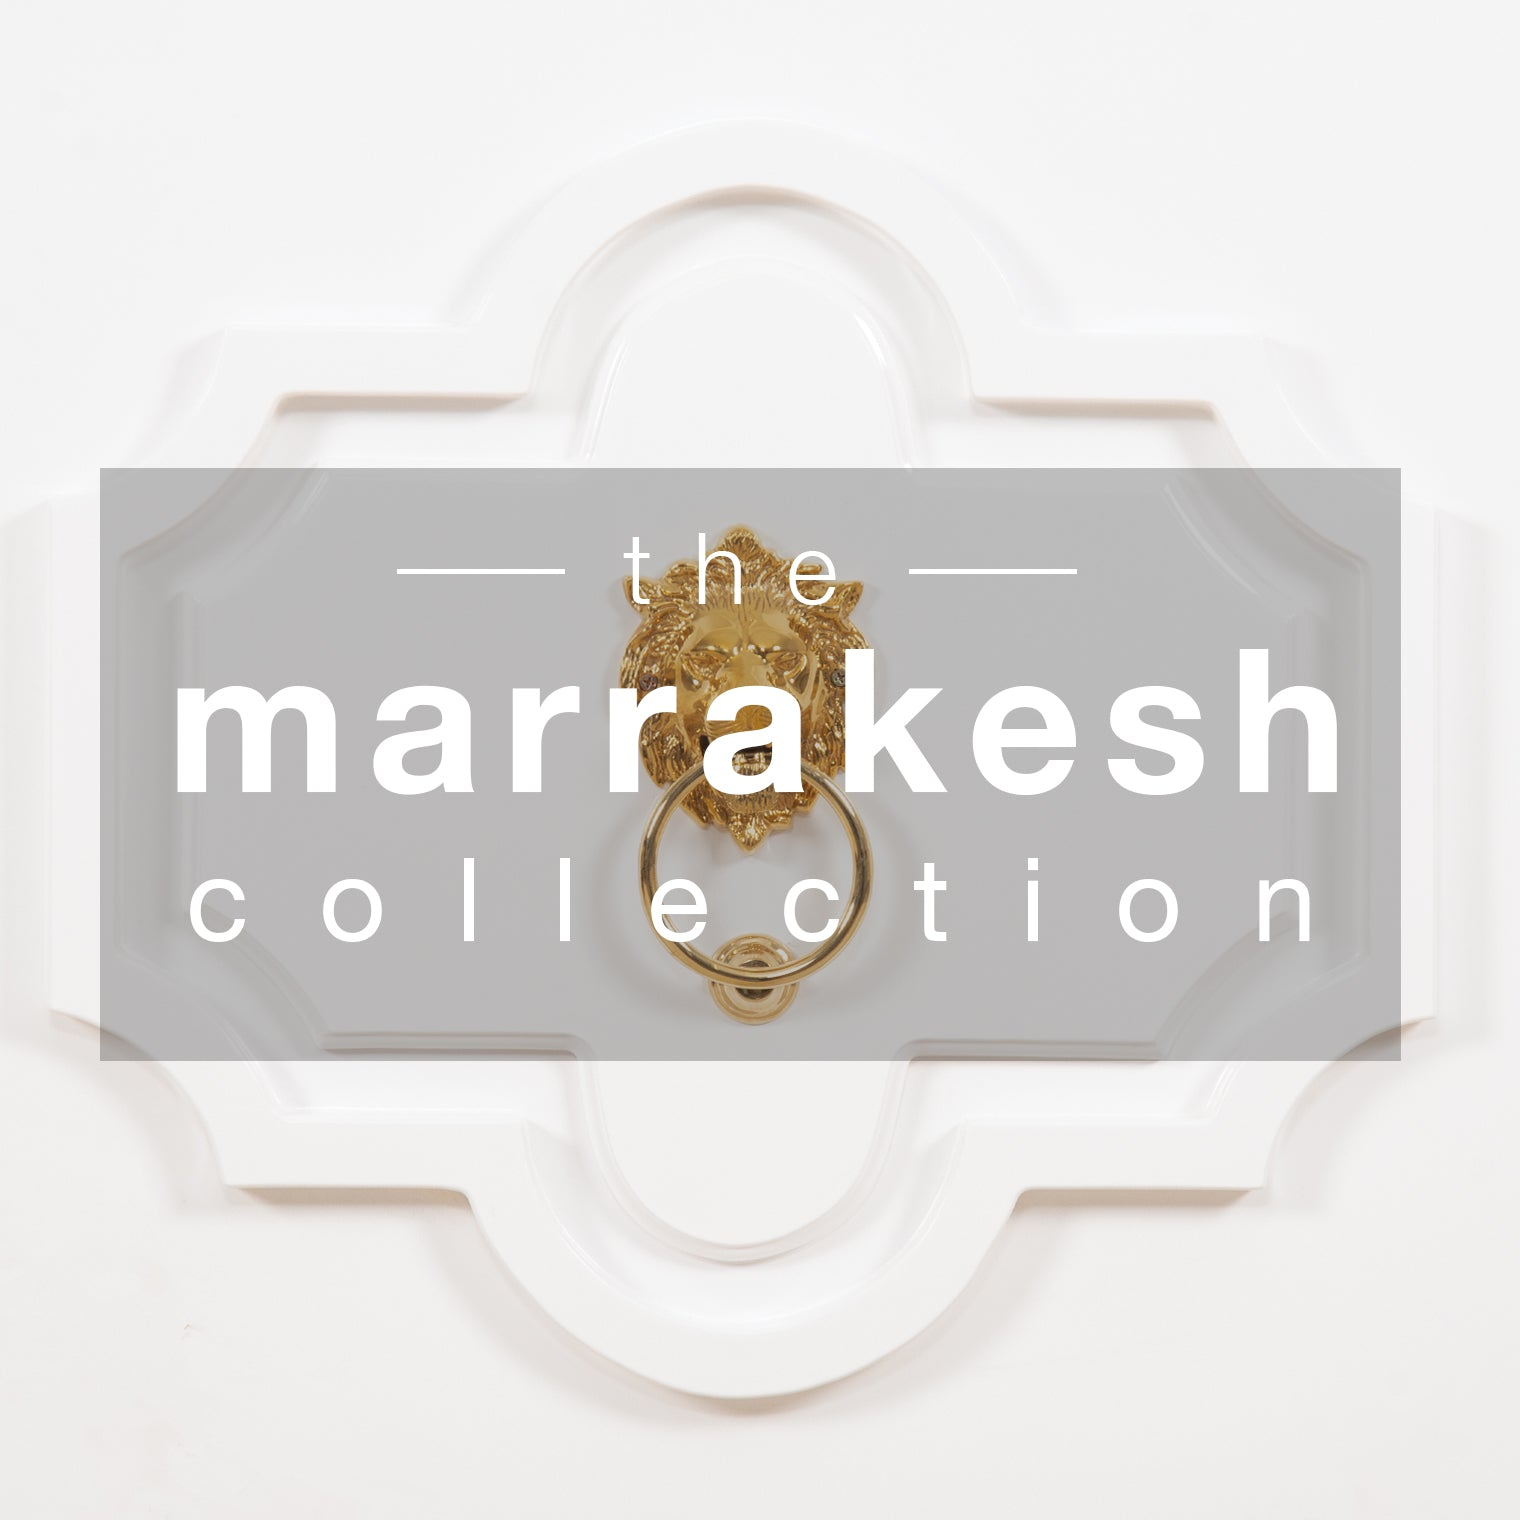 Ornate white door with gold lion door knocker and 'the Marakesh Collection' in white letters on shaded center rectangle